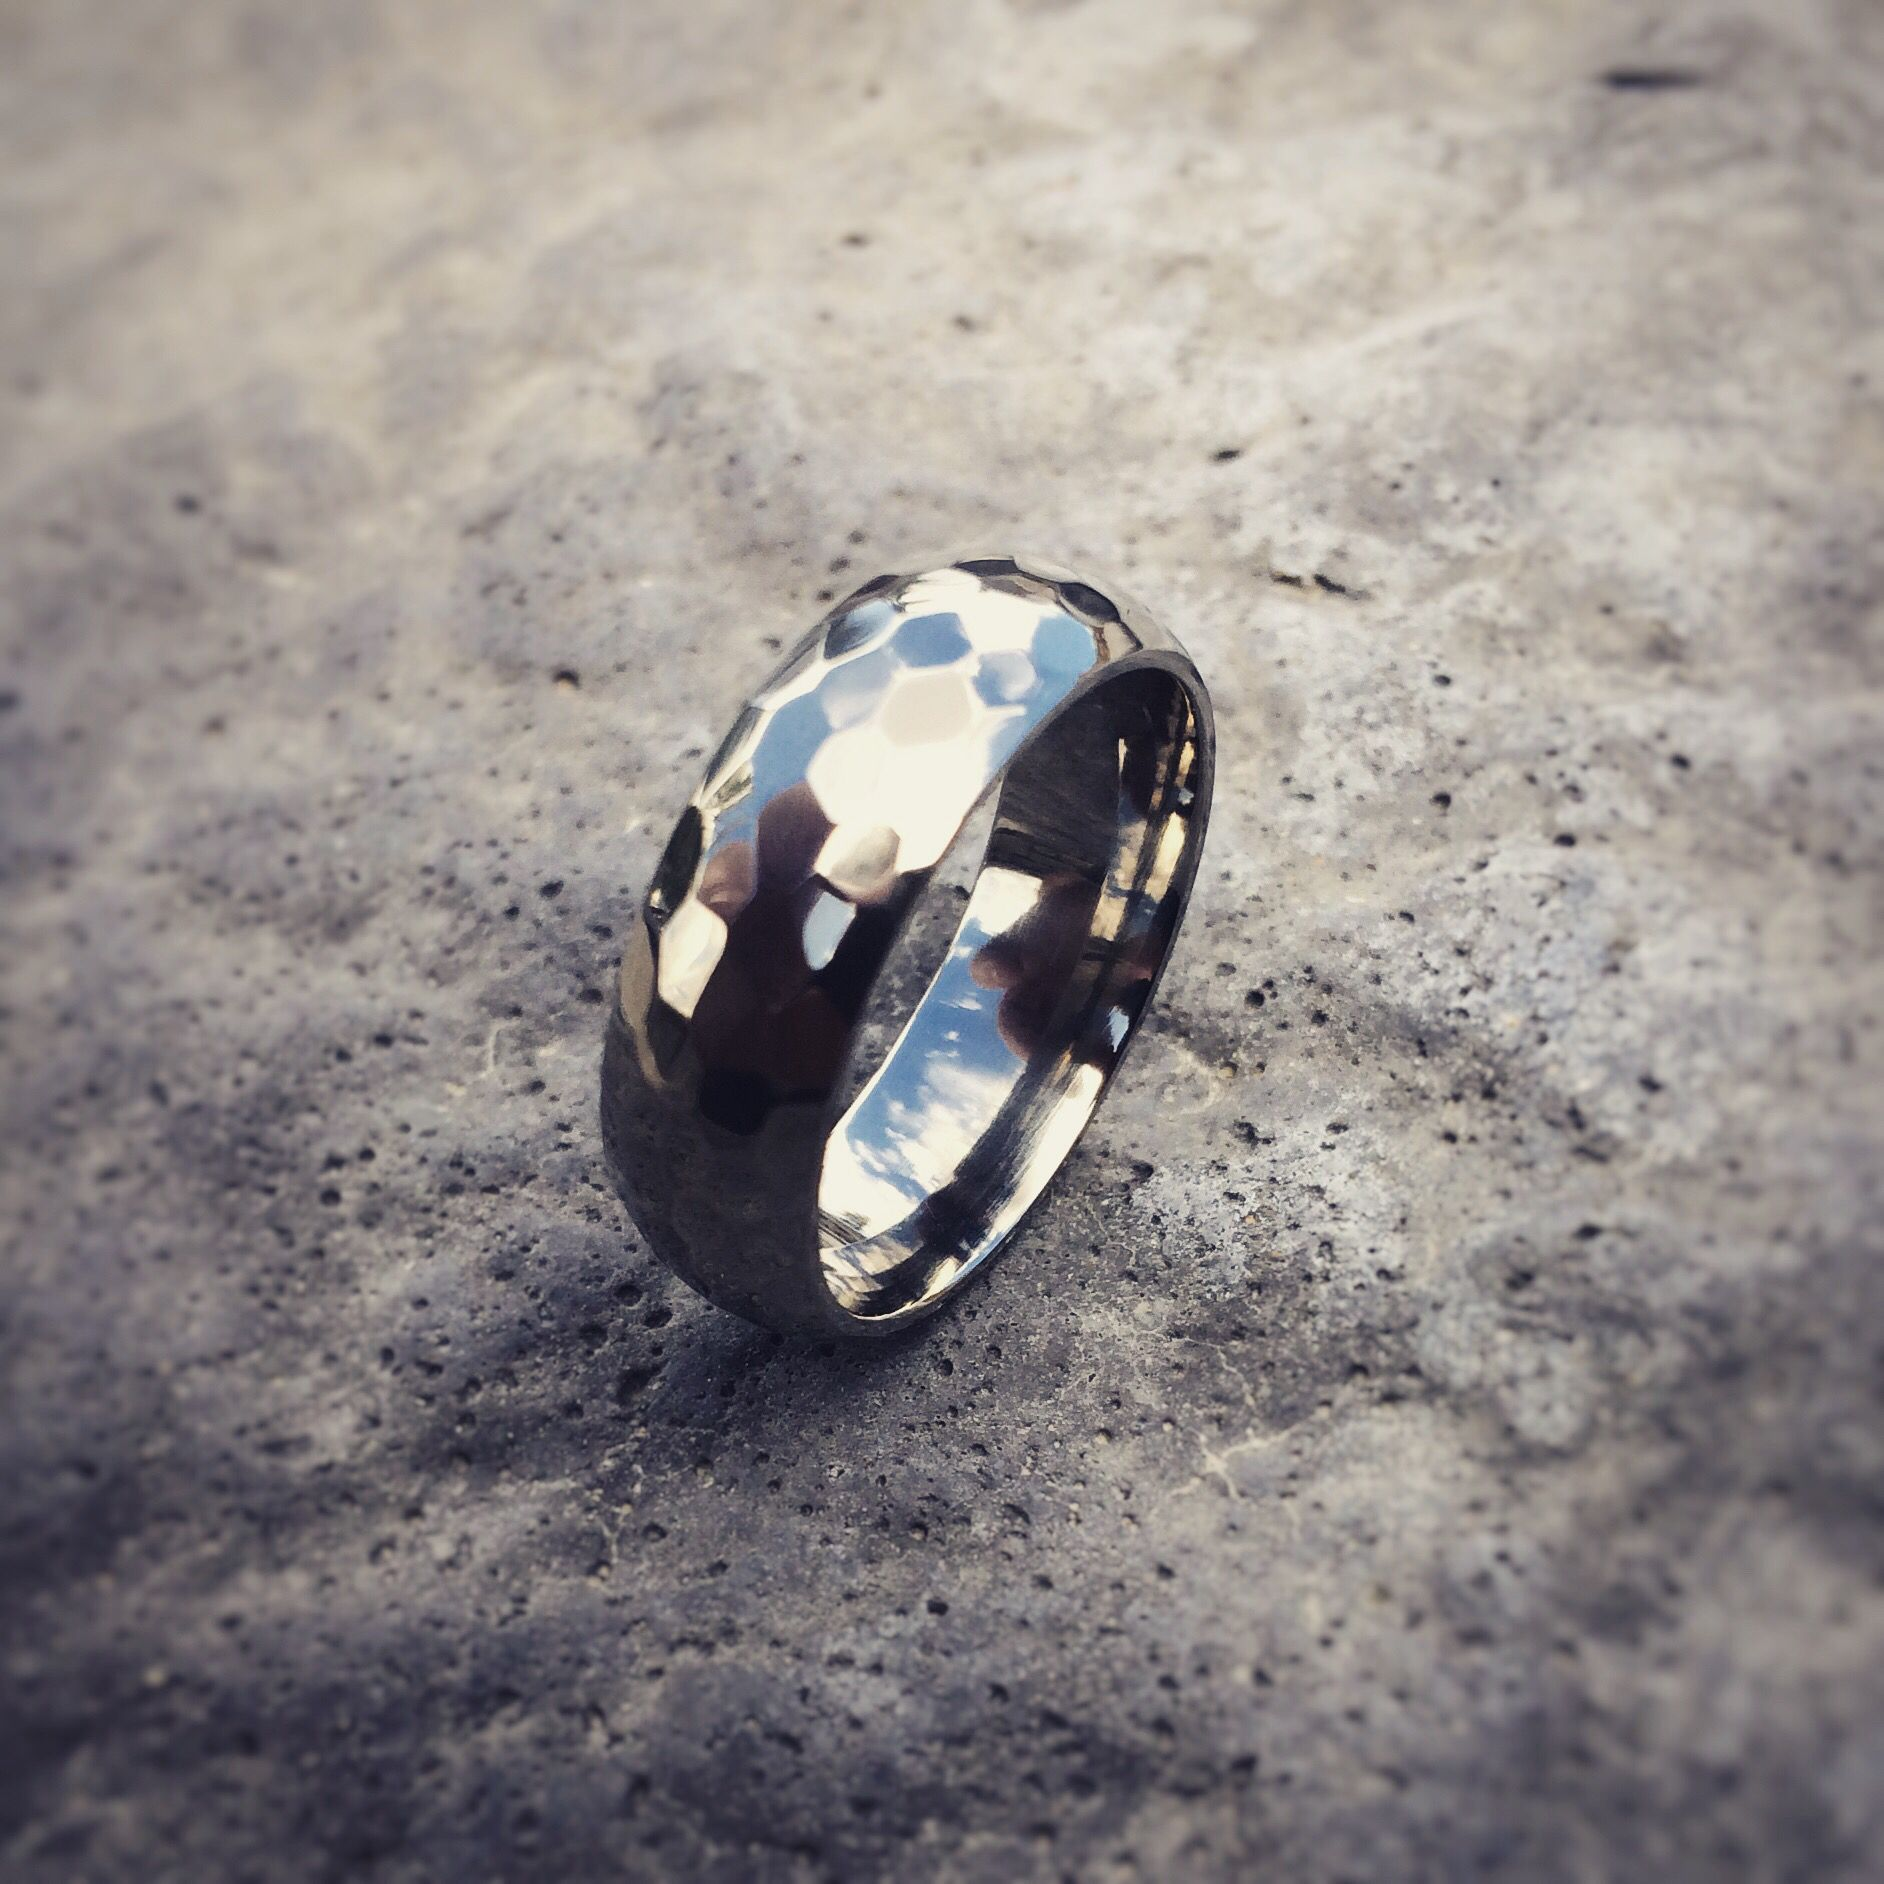 #handcrafted Percival Light polished #mensring #titanium.  Whole collection at titaniumrings.com/mens